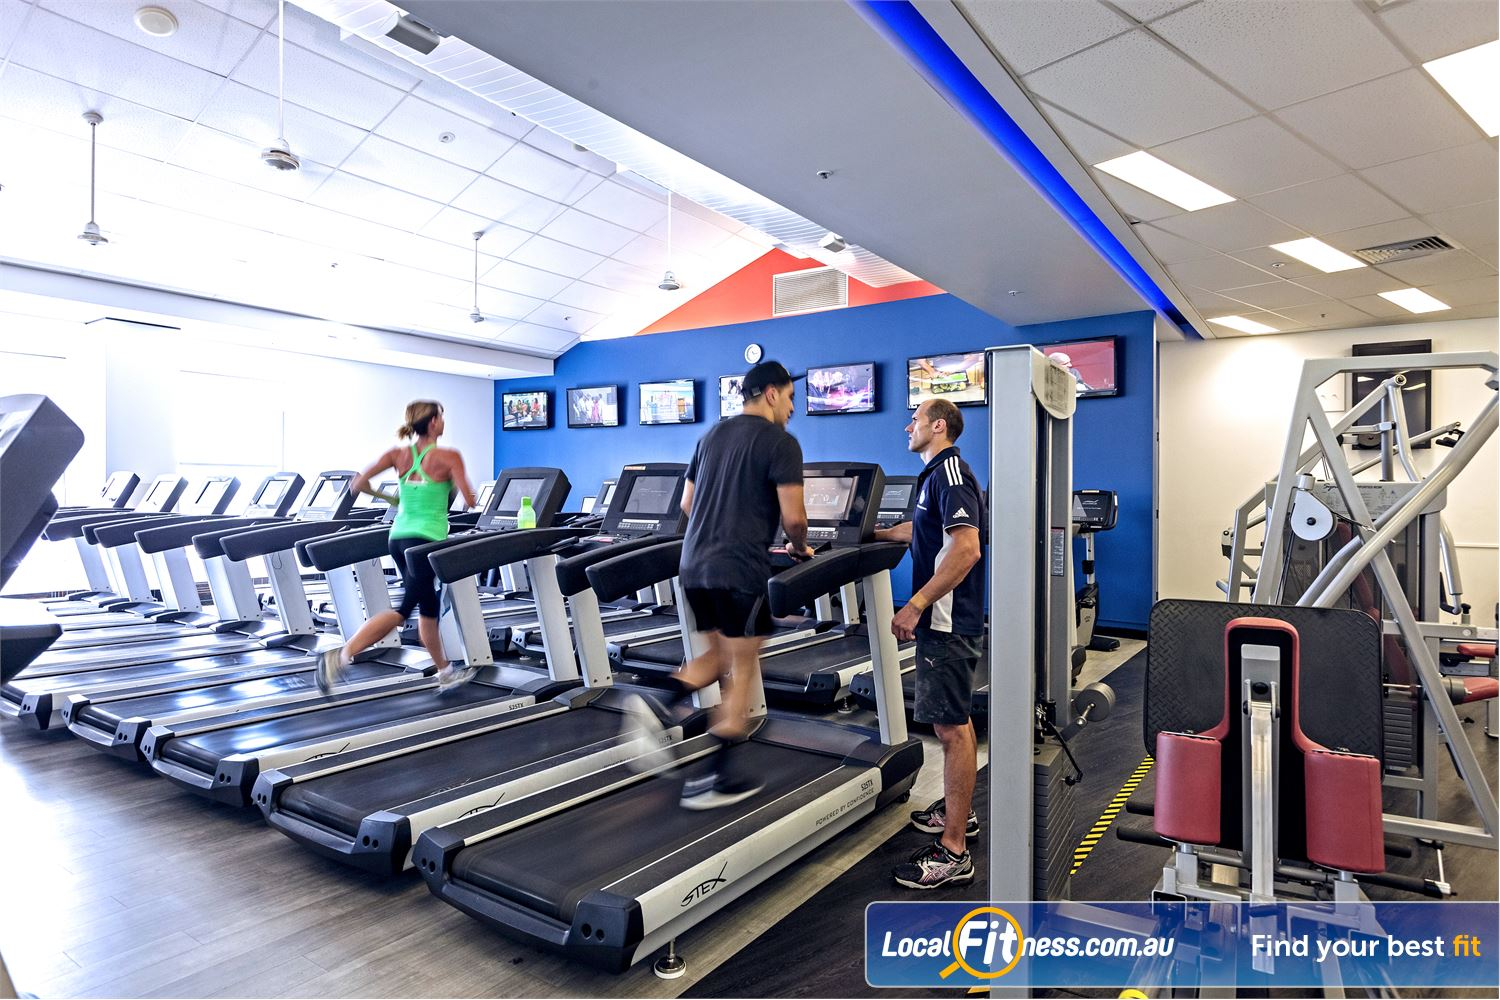 Goodlife Health Clubs Near Hope Island Ask our personal trainers for advice and help with getting better results.